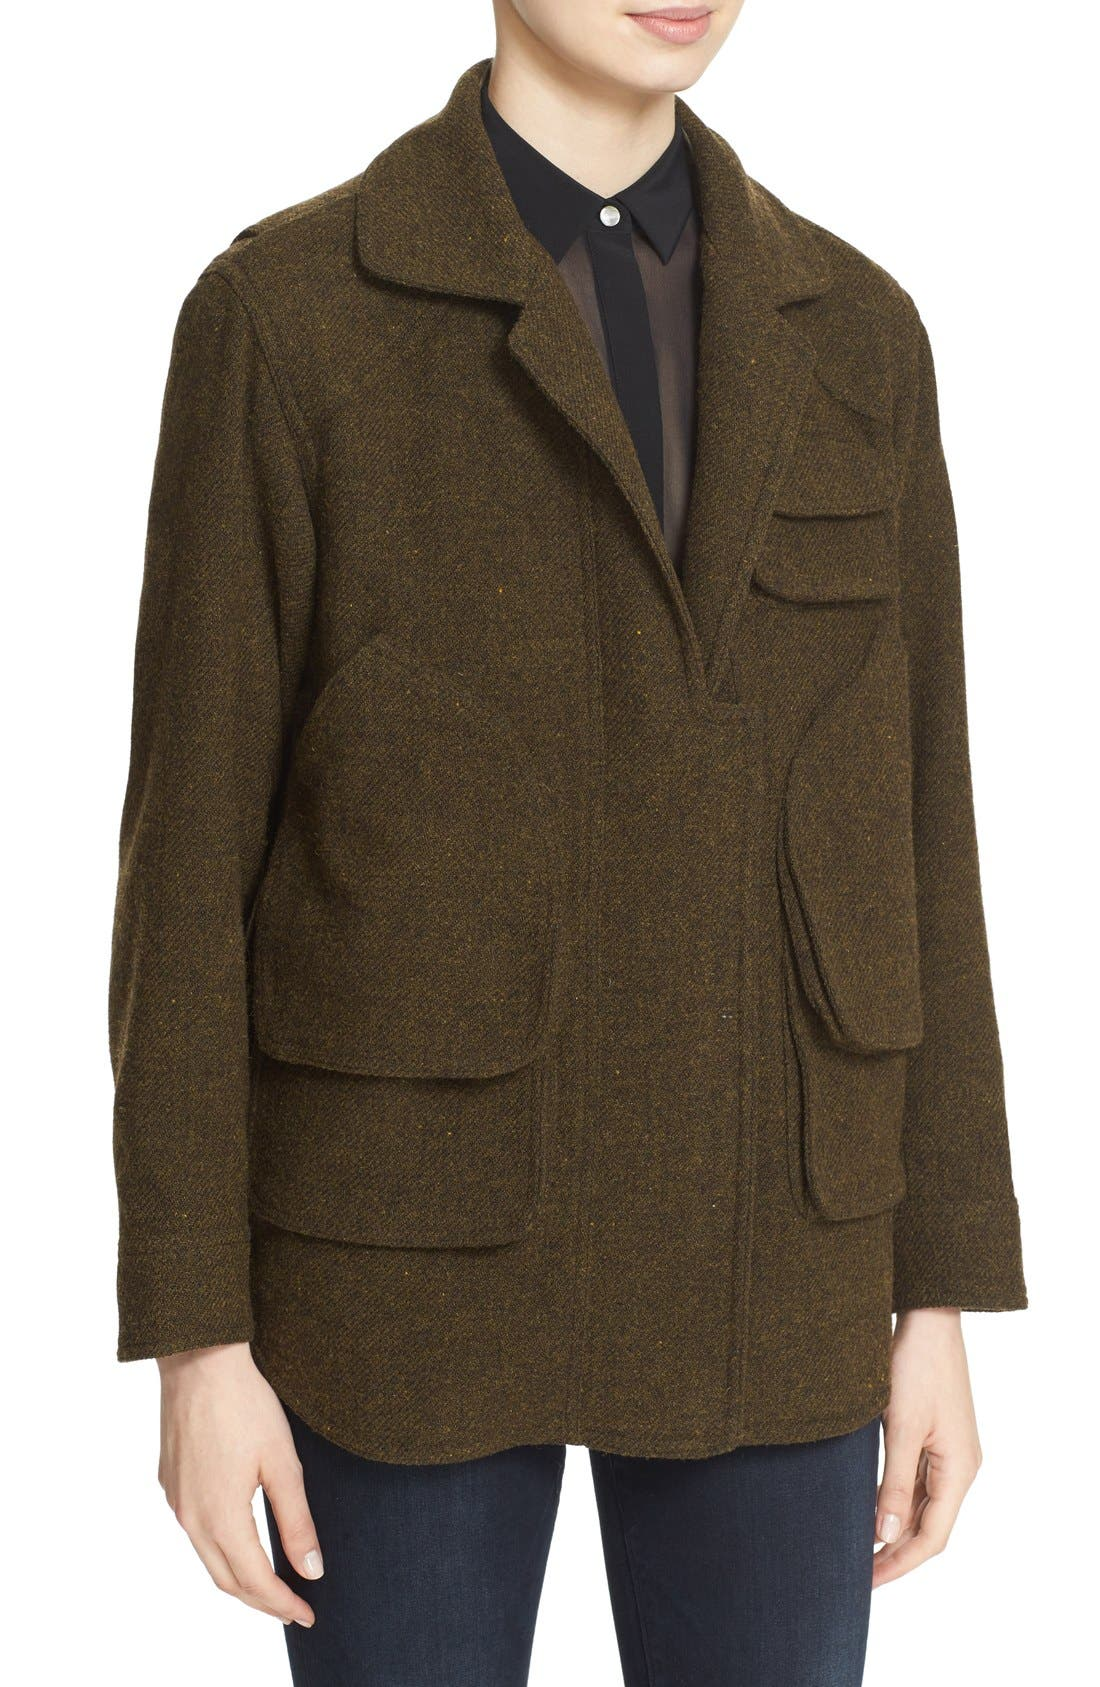 SMYTHE, 'Flak' Wool Blend Jacket with Removable Faux Fur Collar, Alternate thumbnail 2, color, 300